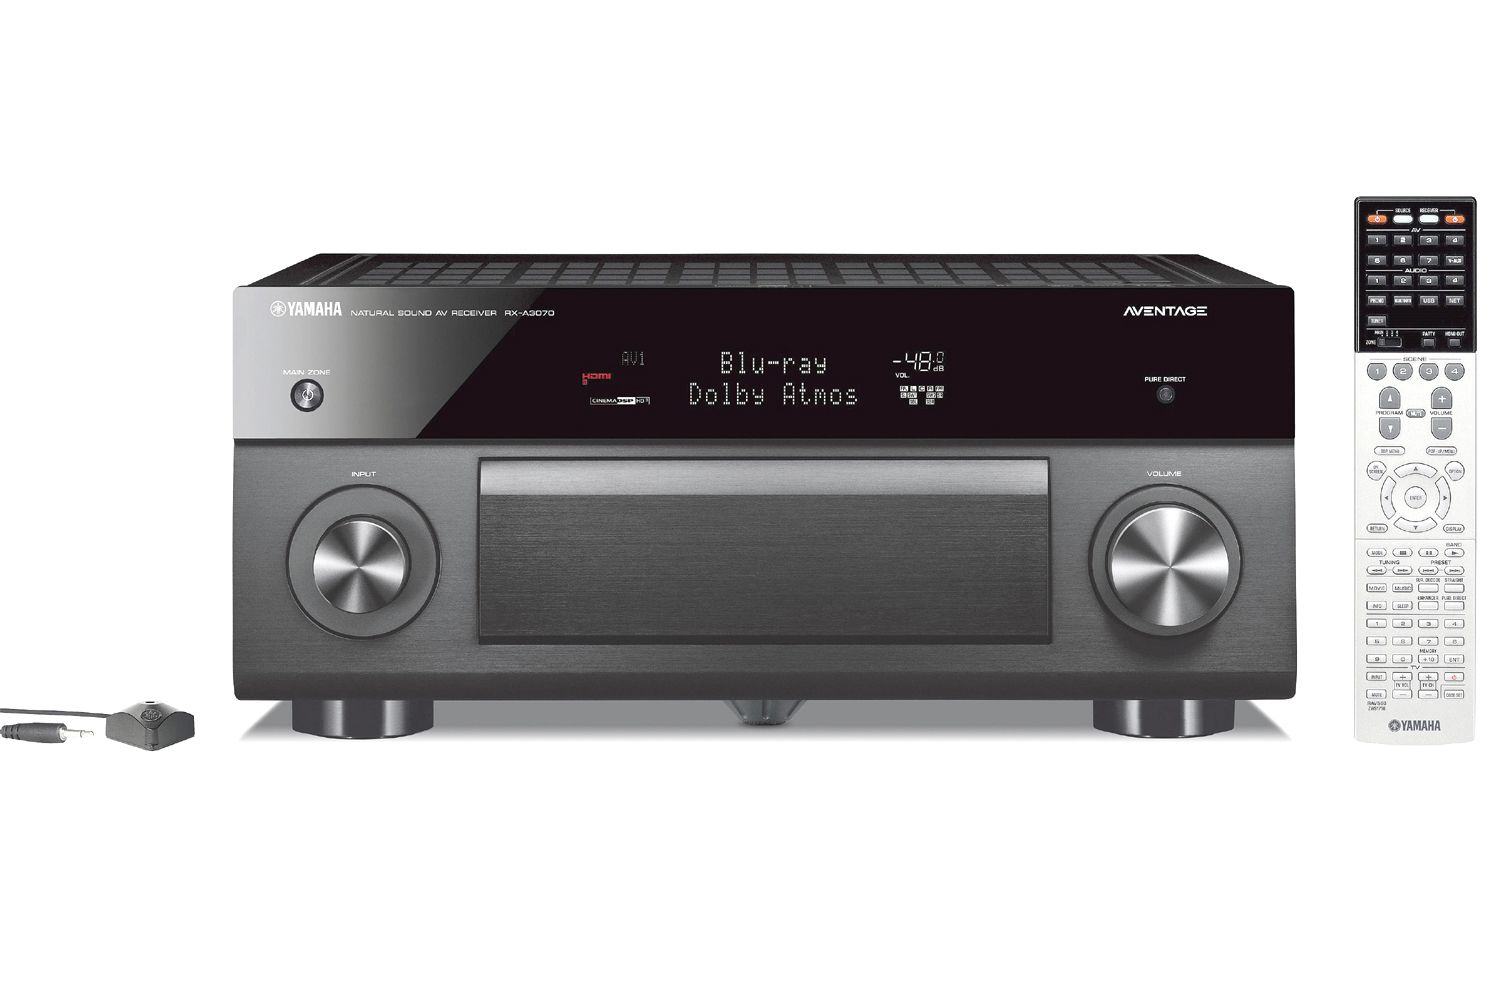 Best Home Theater Receiver 2019 The 10 Best High End Home Theater Receivers of 2019